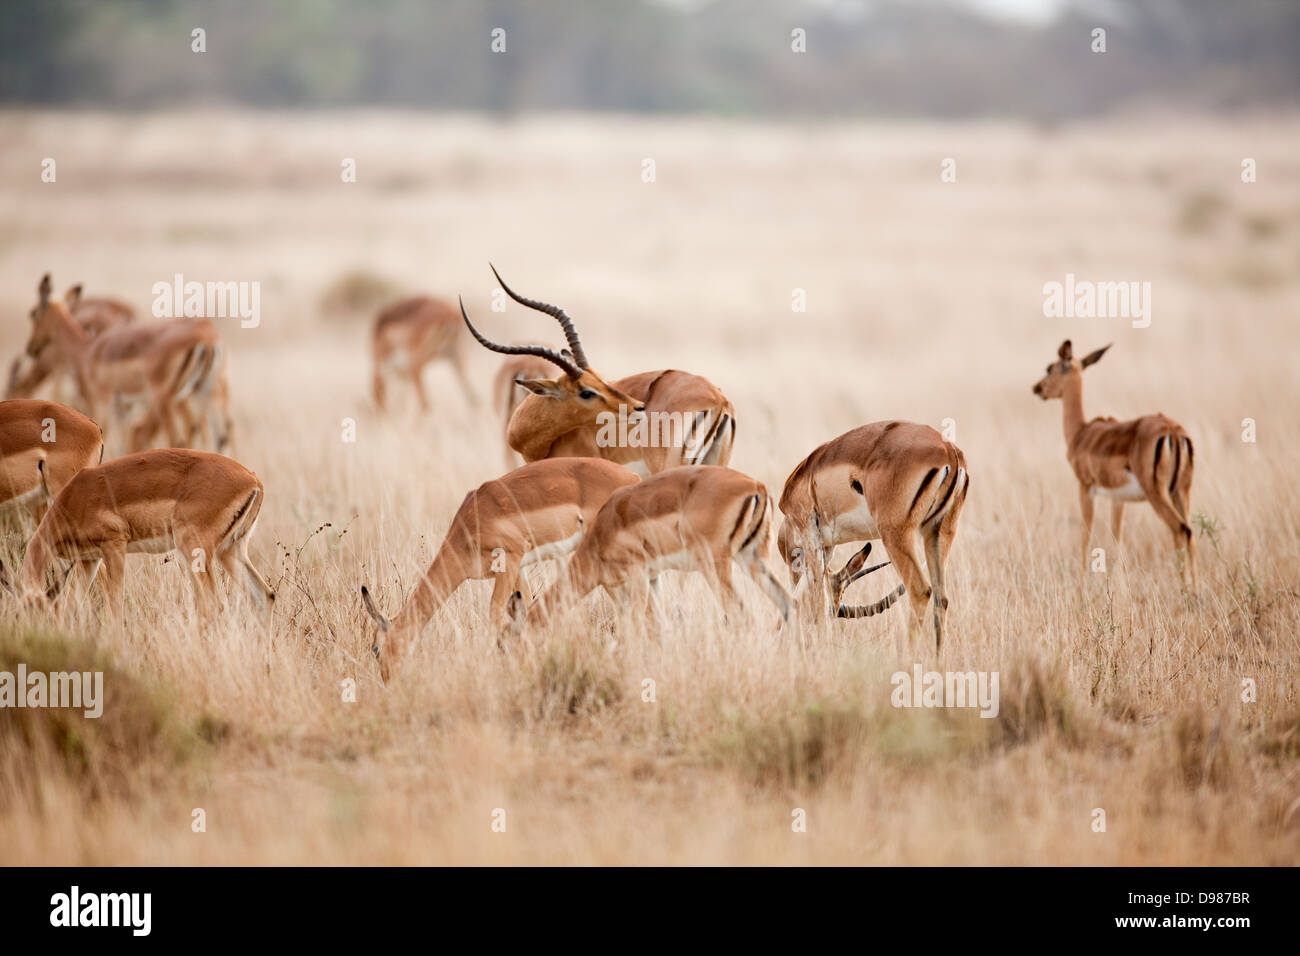 Roebuck marsh area, Phinda Game Reserve, South Africa - Stock Image